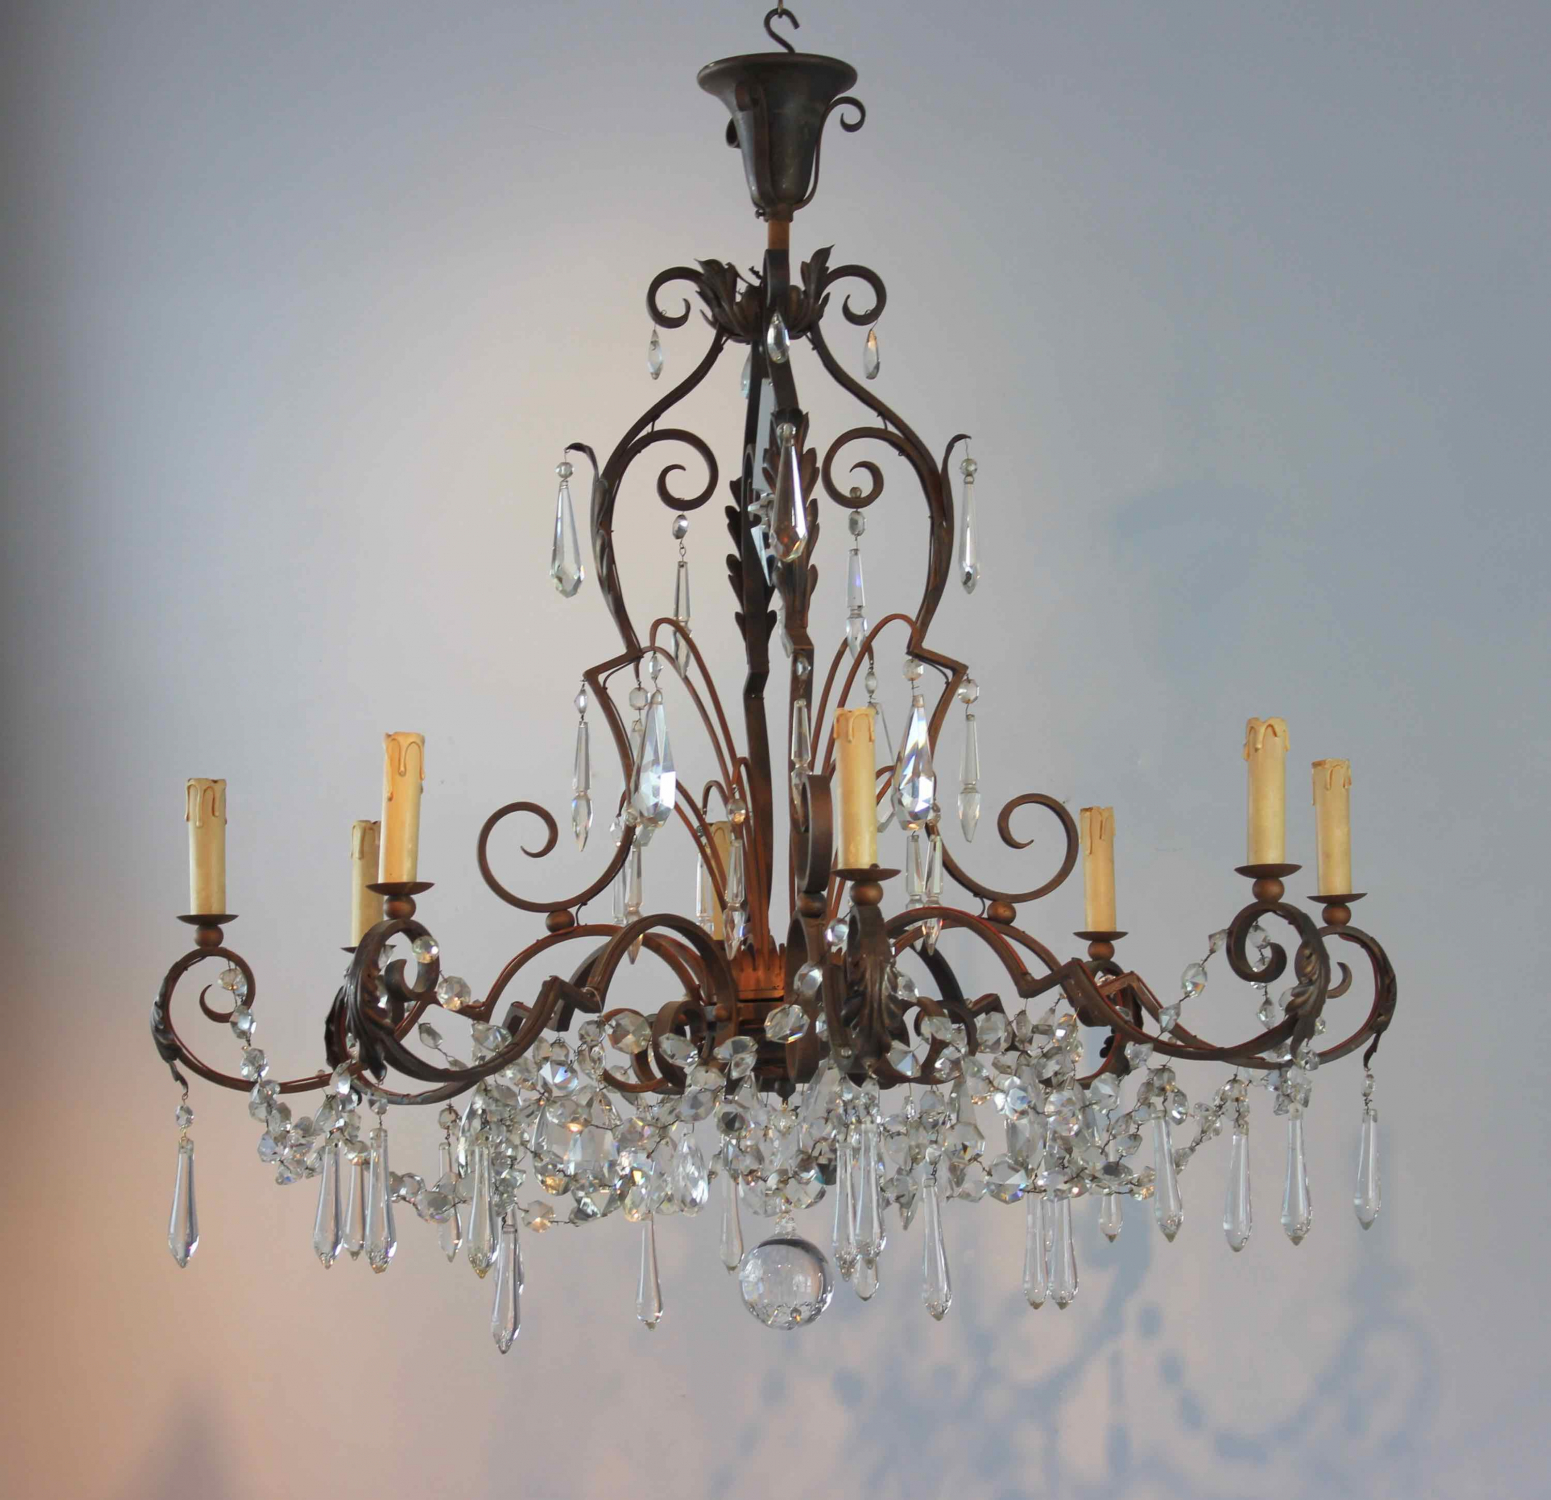 Antique Lighting- French chandeliers - image 3